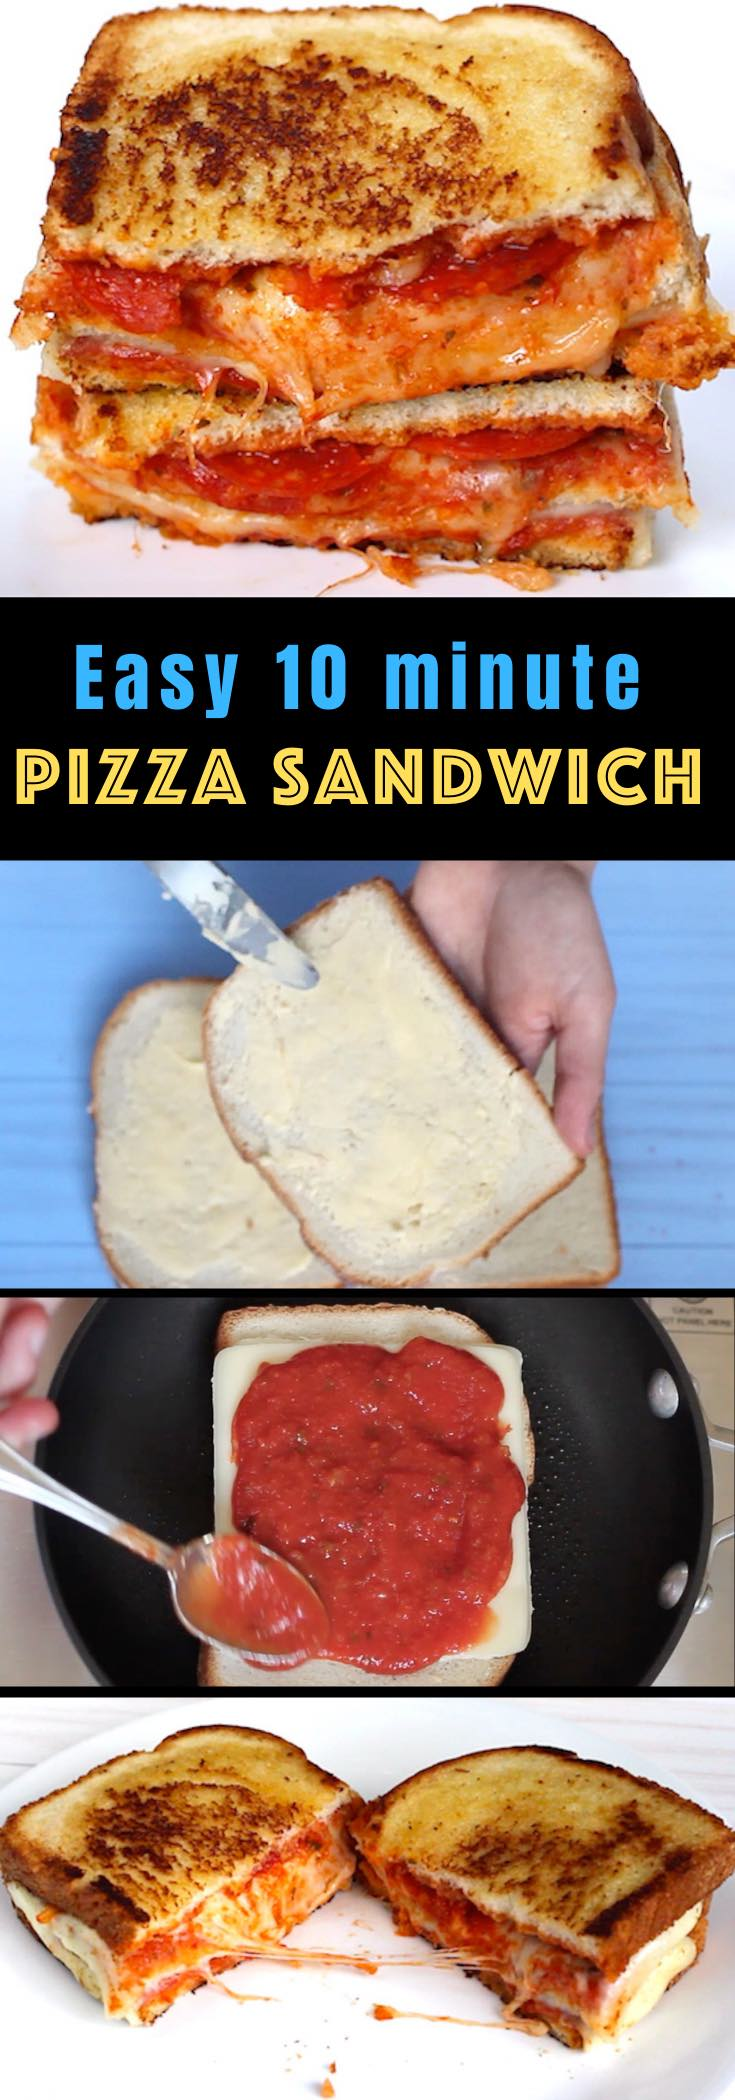 These easy Pizza Sandwiches combine your favorite bread with delicious pizza toppings such as pepperoni and mozzarella cheese, all cooked to golden cheesy perfection. They'll take your love for grilled cheese to a new level!